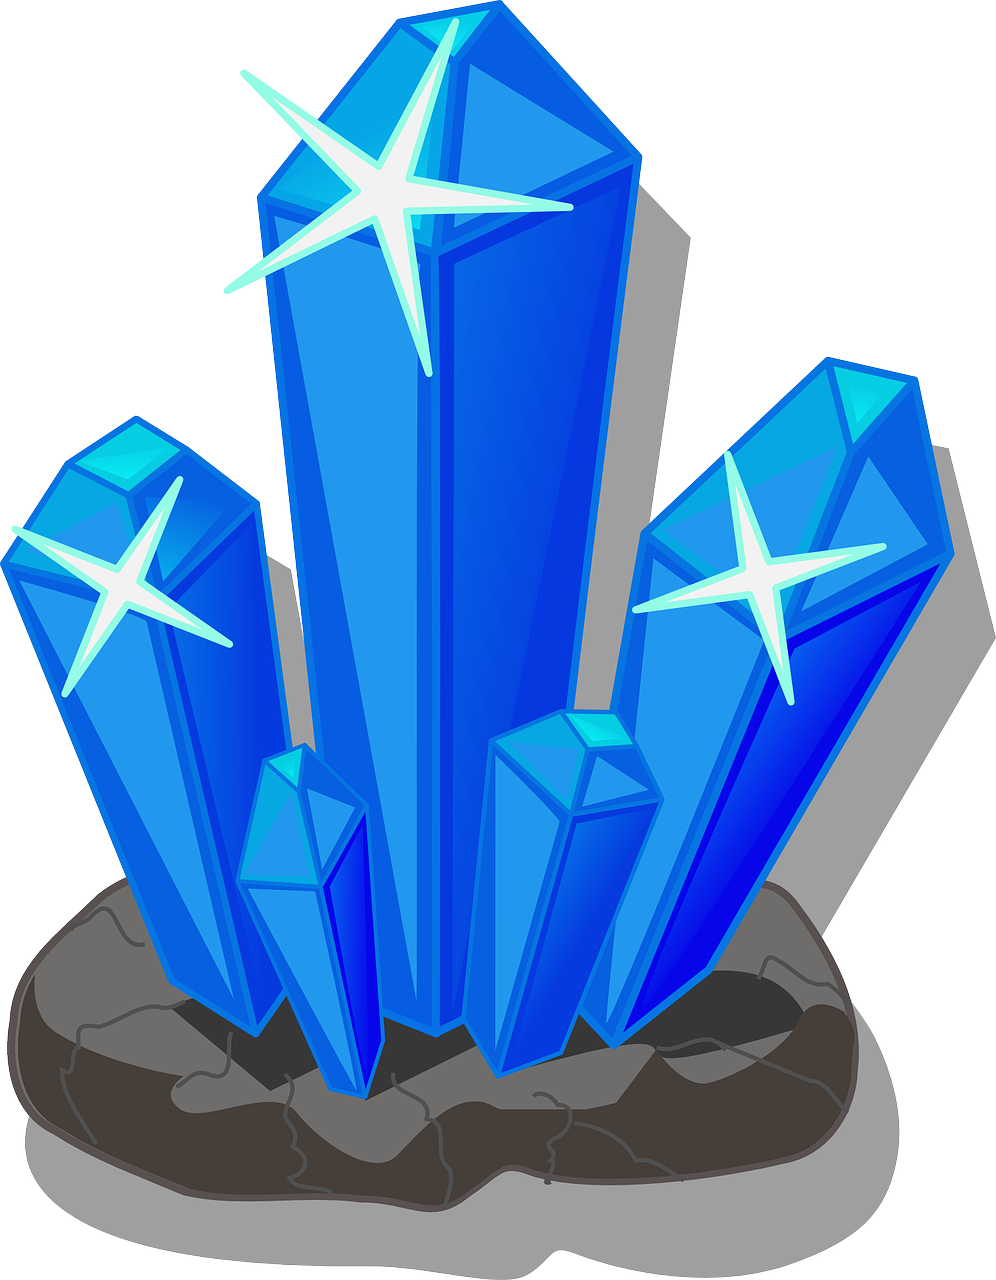 Crystal Cave clipart #4, Download drawings